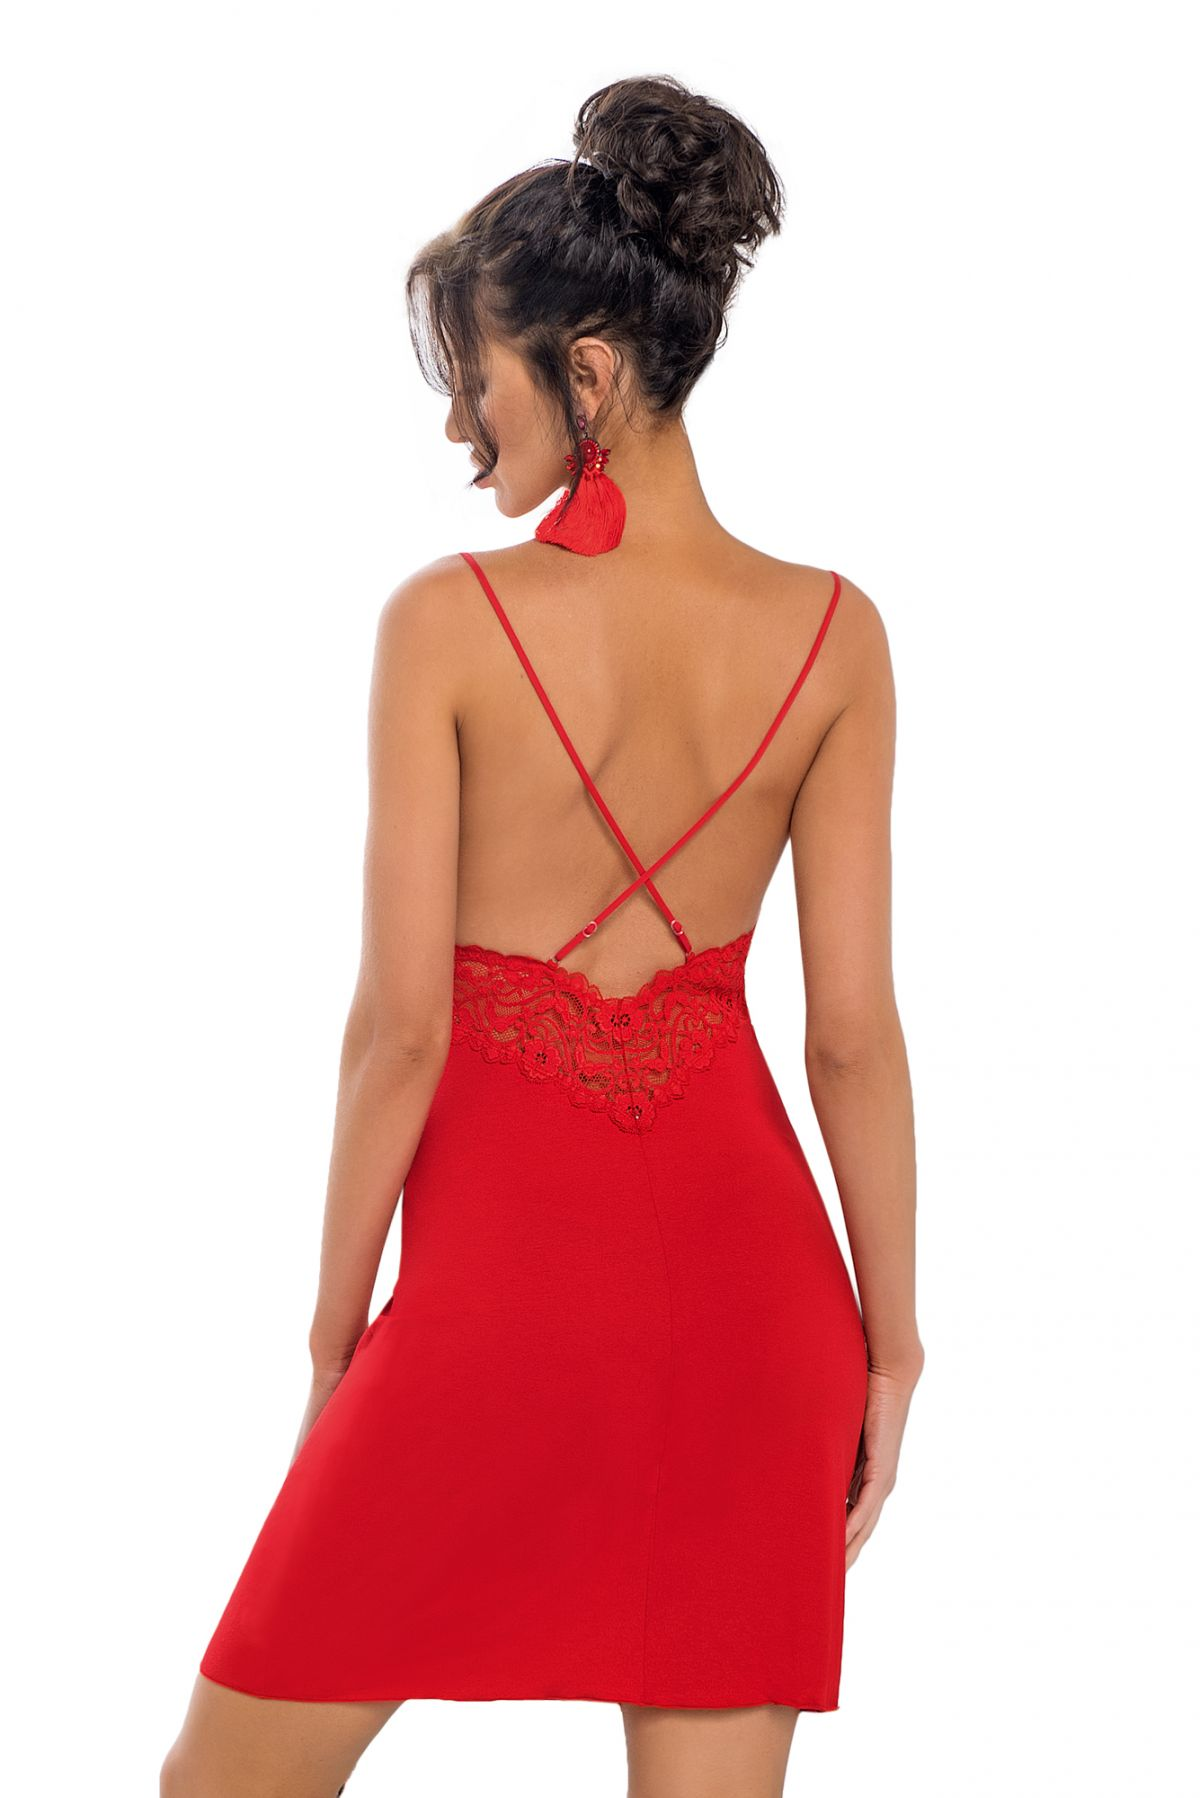 Lily Red push-up-RED